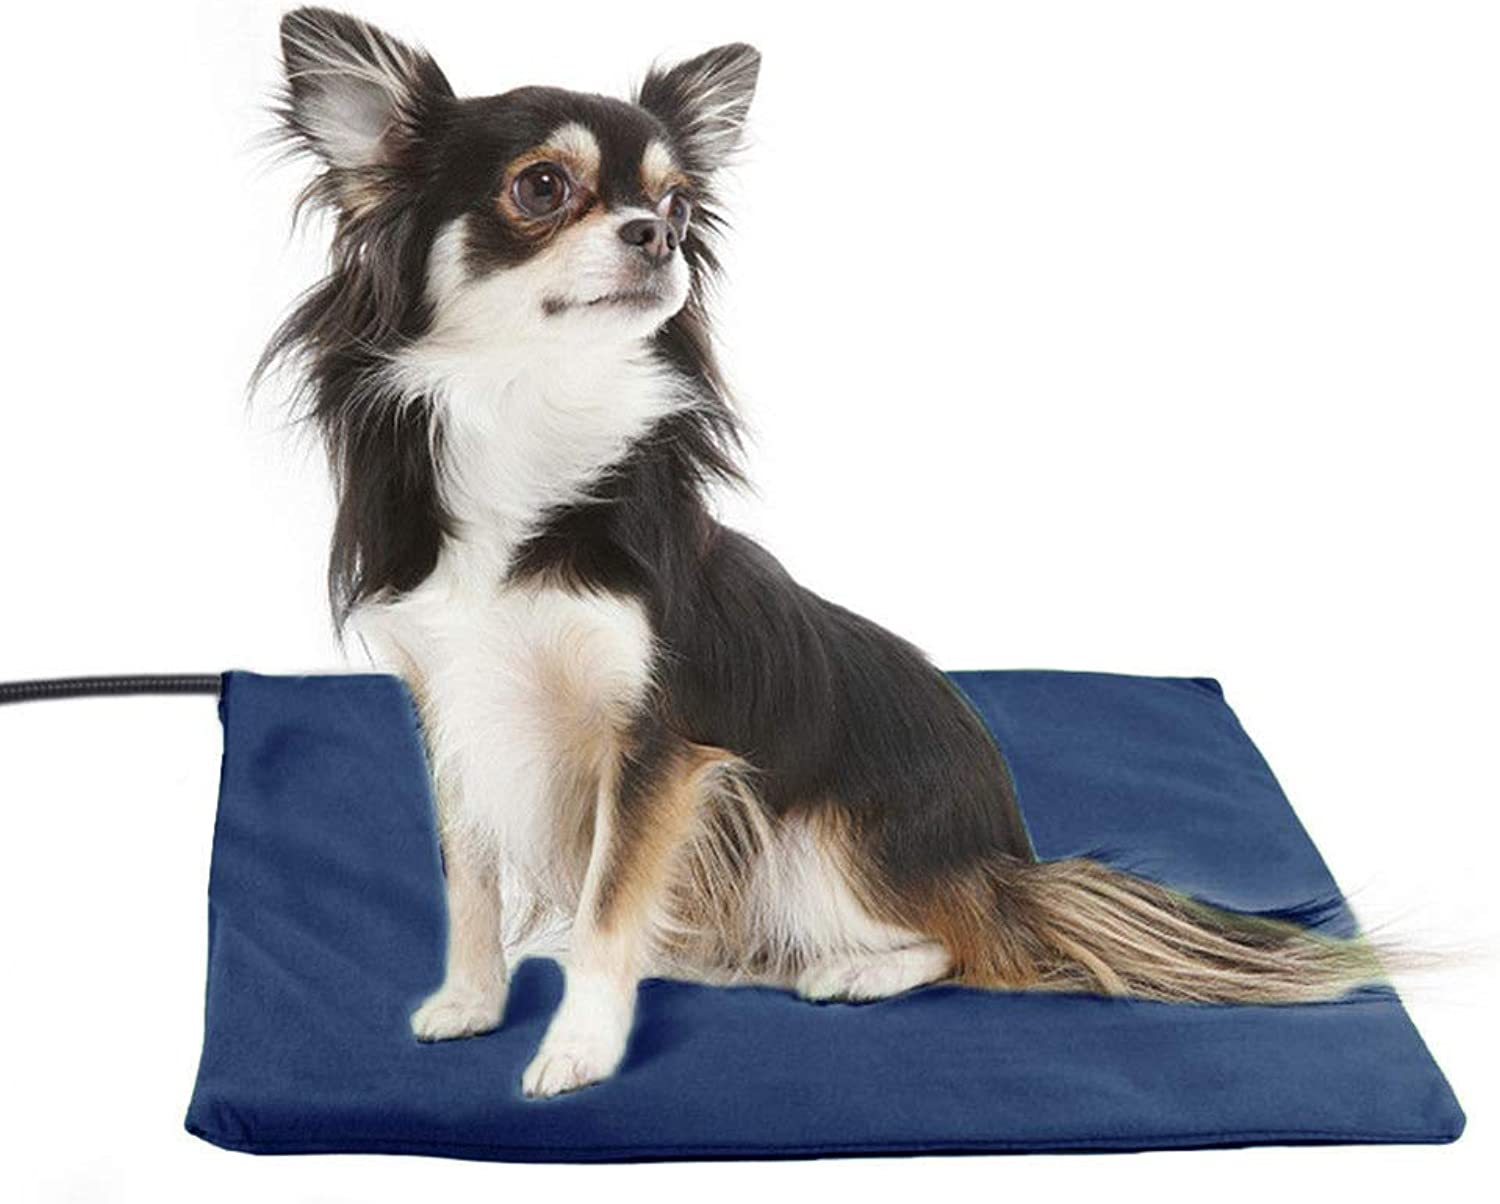 DMGF Pet Heating Pad,Dog Cat Electric Heating Bed Mats,Liner Waterproof 7 Grade Temperature Control with Chew Resistant Cord & 2 bluee Fleece Washable Covers,M